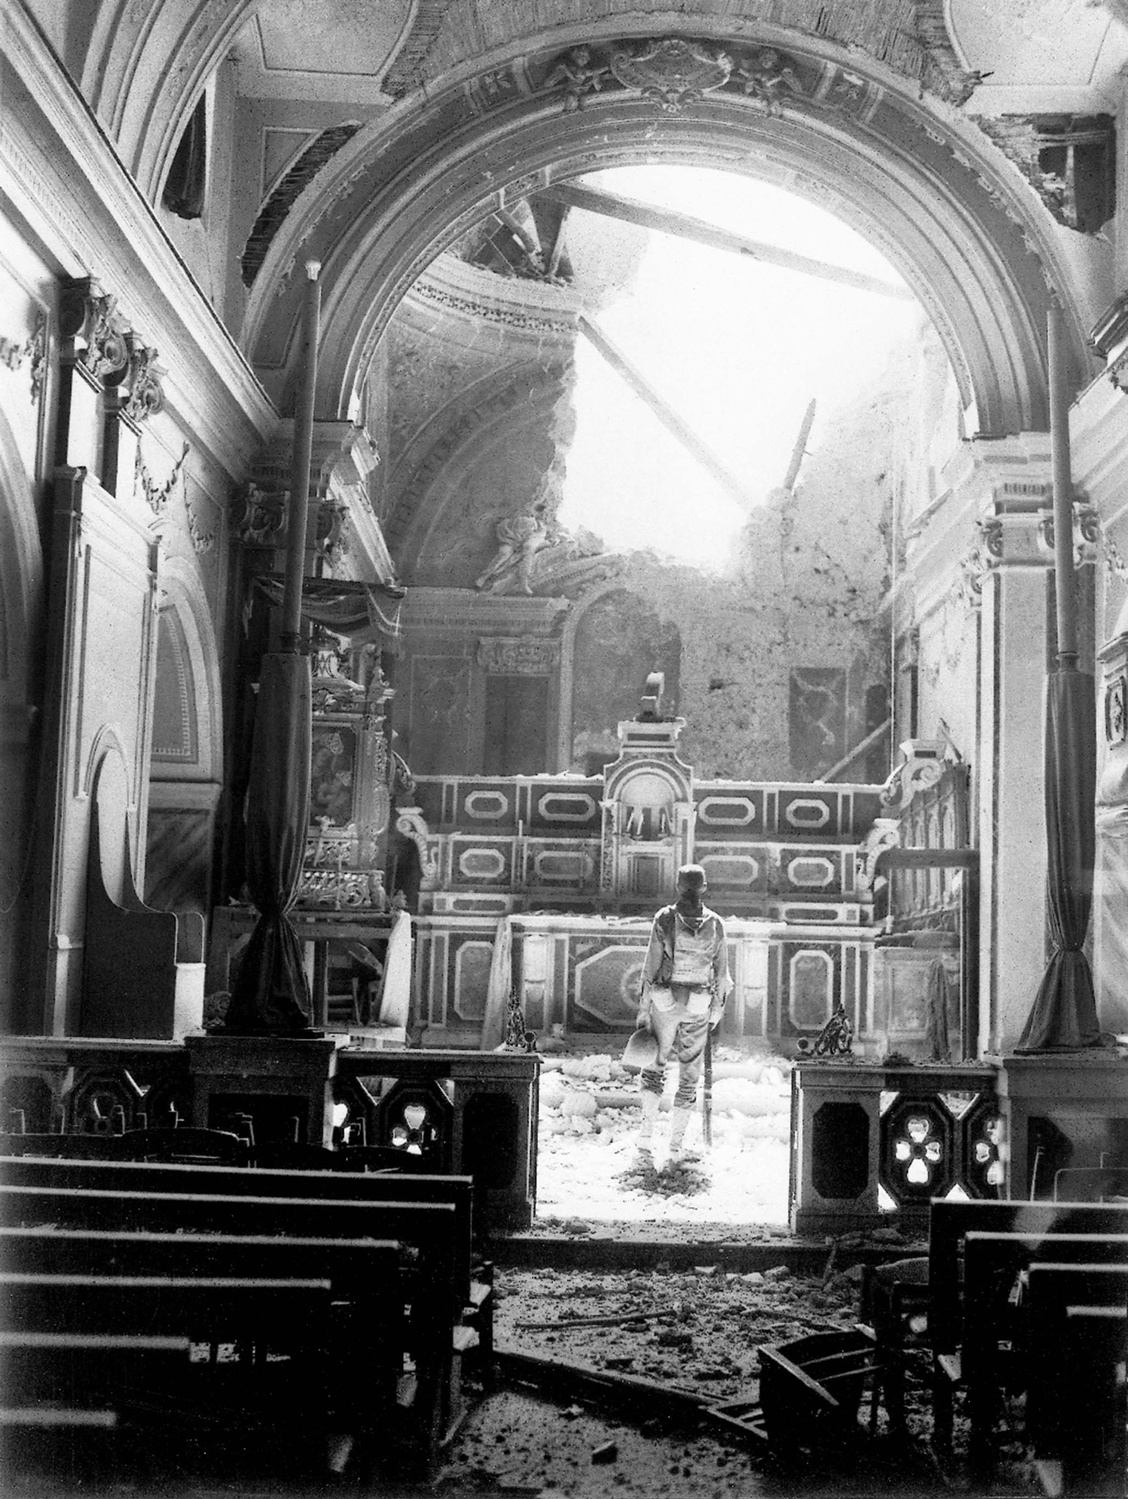 A private enters a bombed-out cathedral in Acerno, Italy, during WWII.